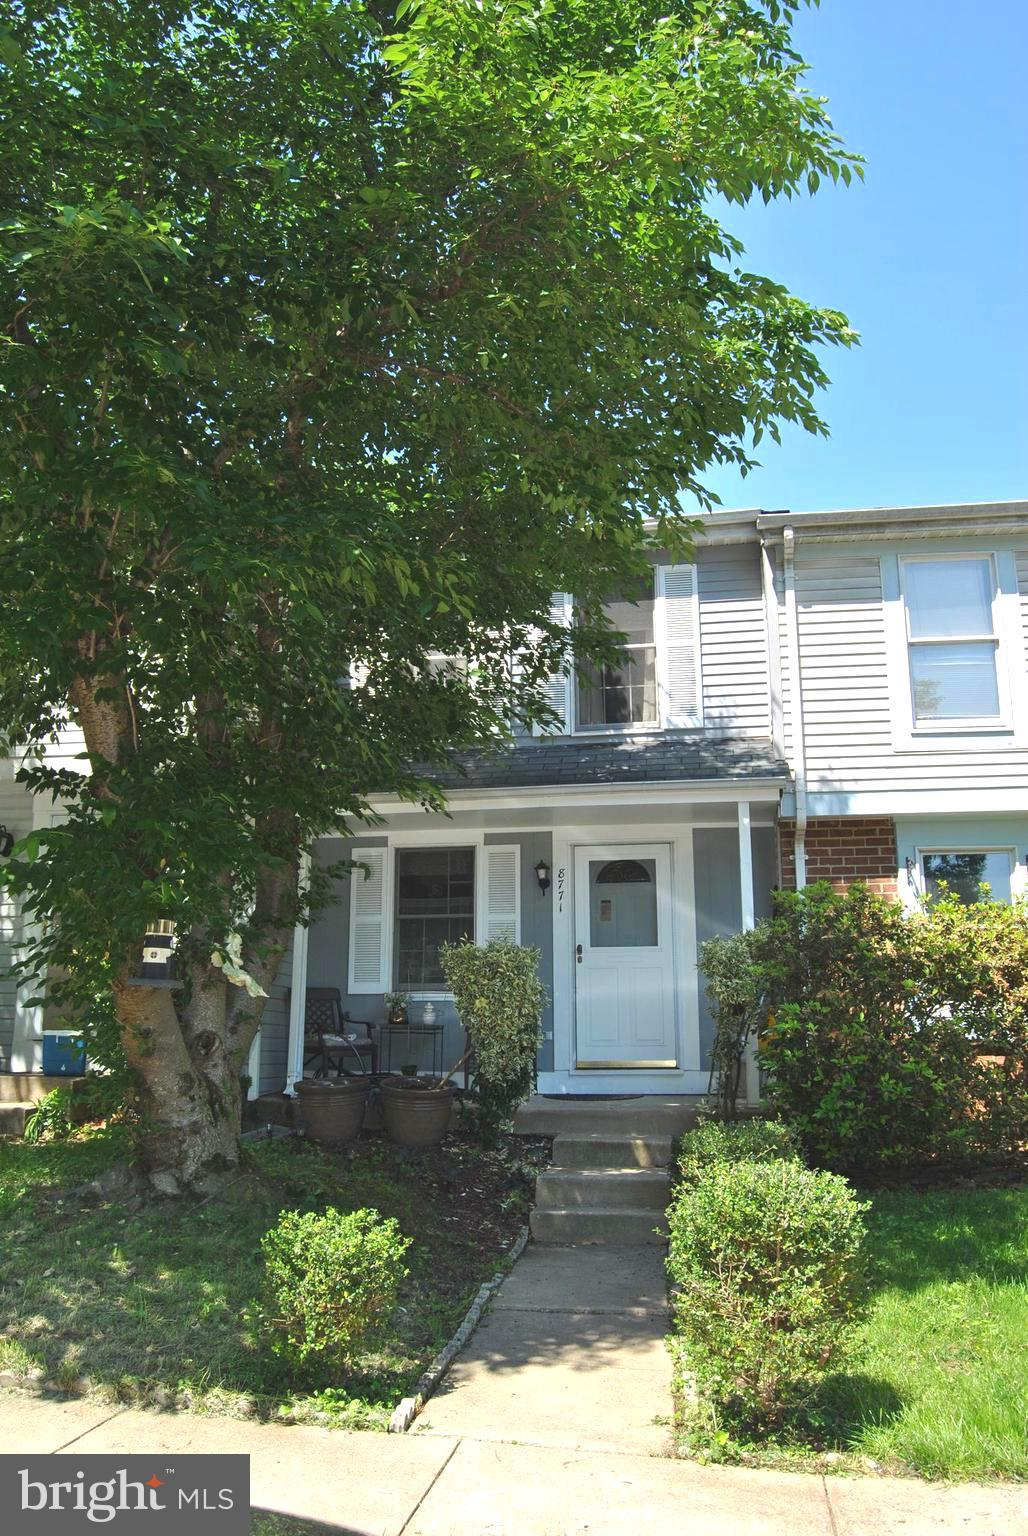 Three (3) Level Townhouse just minutes from Lorton Town Center, VRE, Fairfax Co. Pkwy and Rt. 95. Fenced backyard.